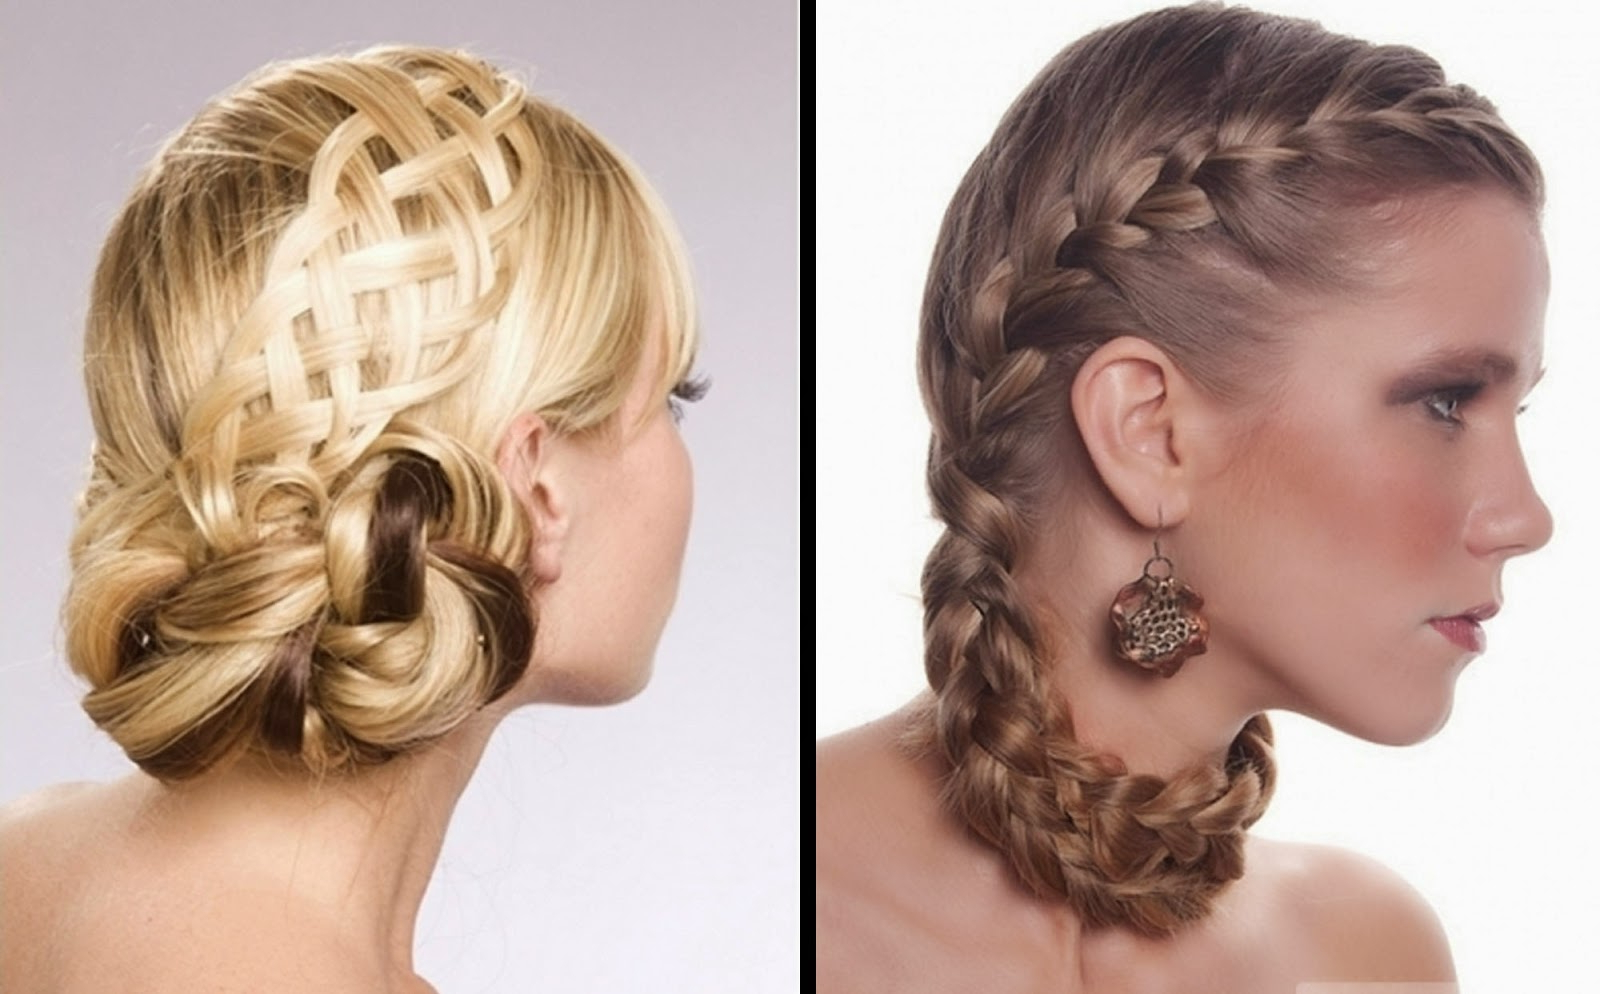 Fashionable Easy Curled Prom Updos Inside 21 Most Glamorous Prom Hairstyles To Enhance Your Beauty – Haircuts (View 17 of 20)